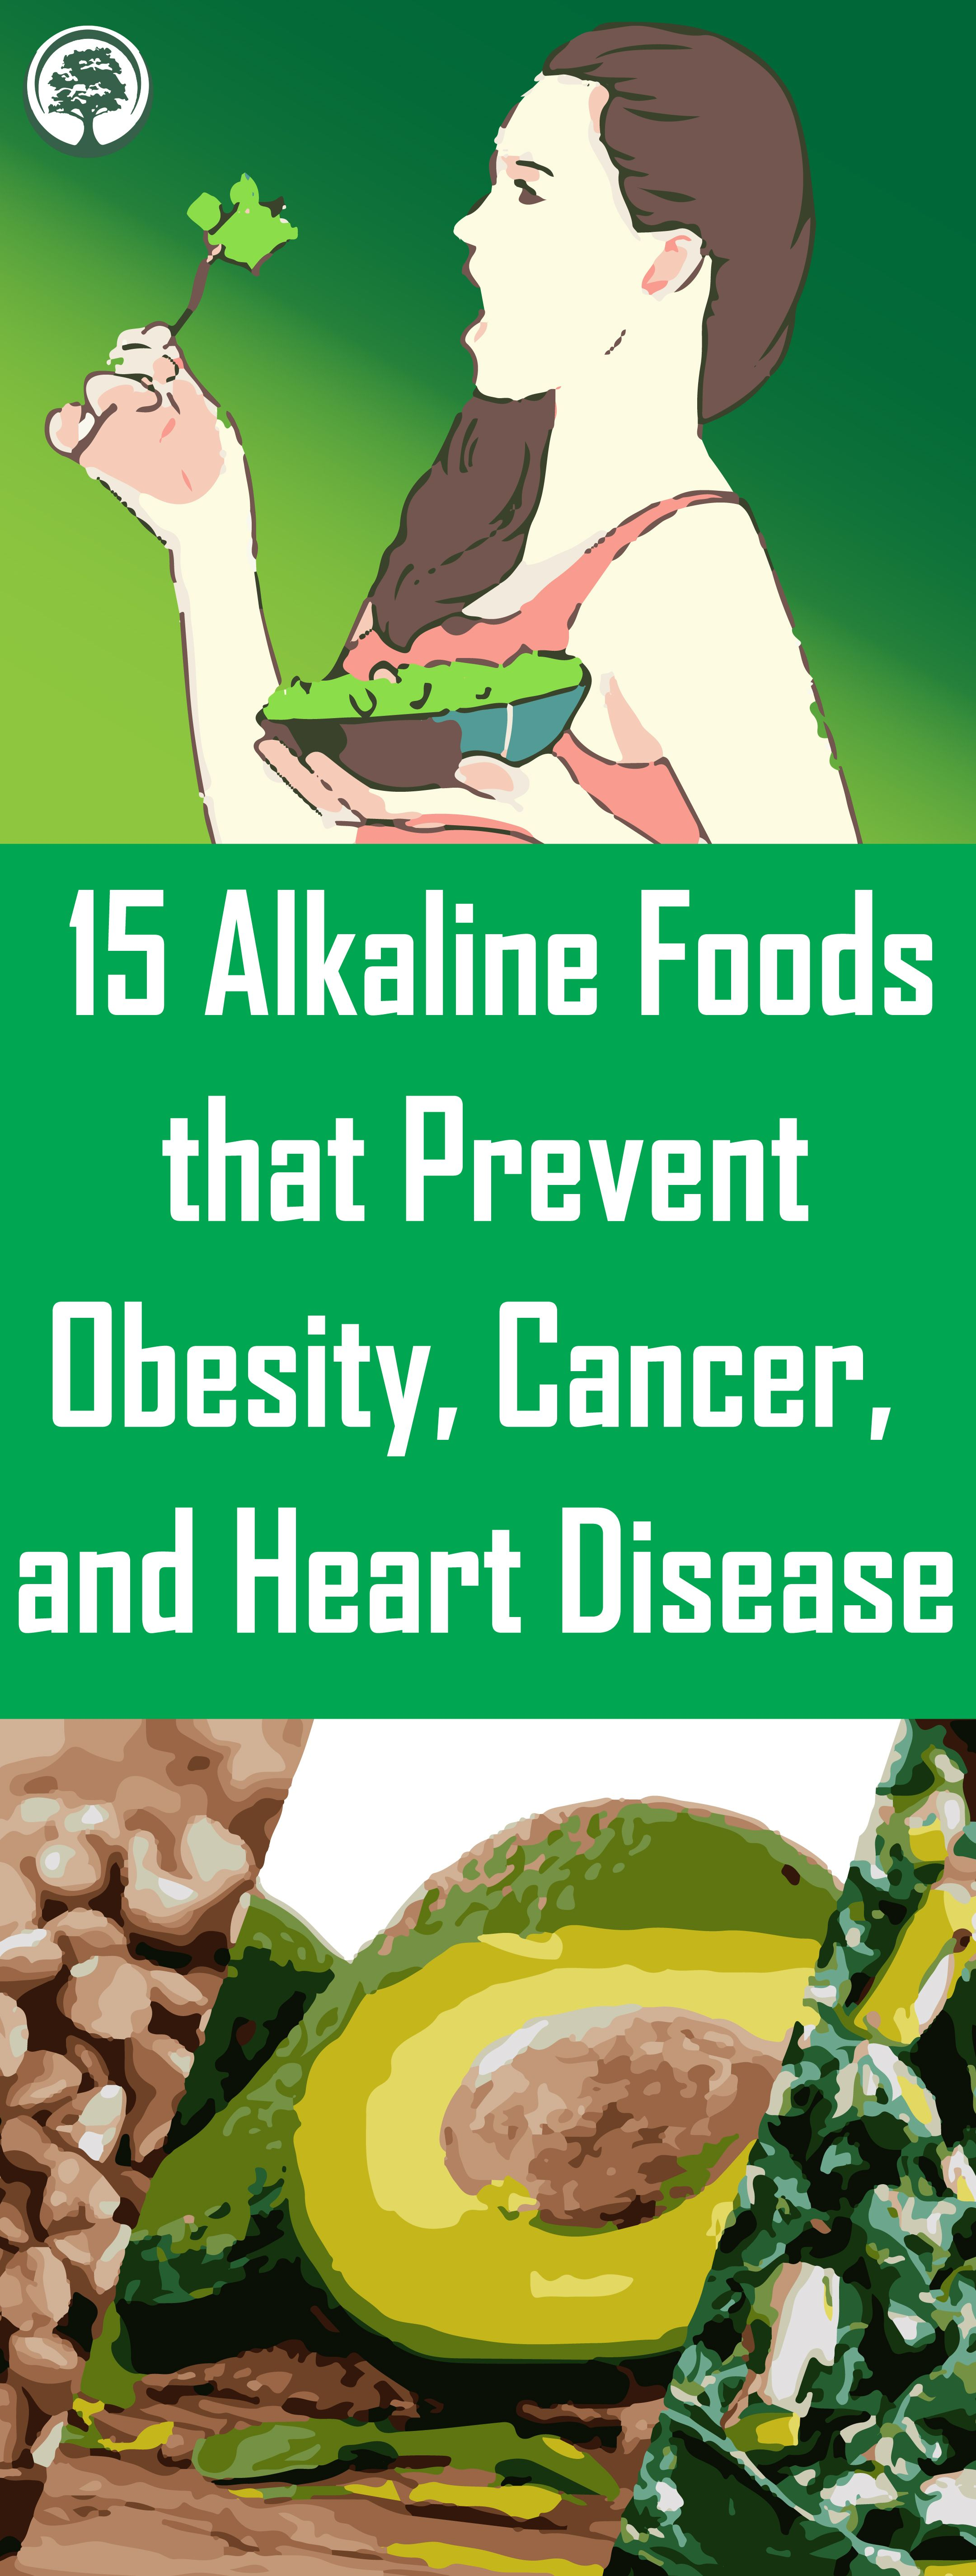 15 Alkaline Foods that Prevent Obesity, Cancer, and Heart